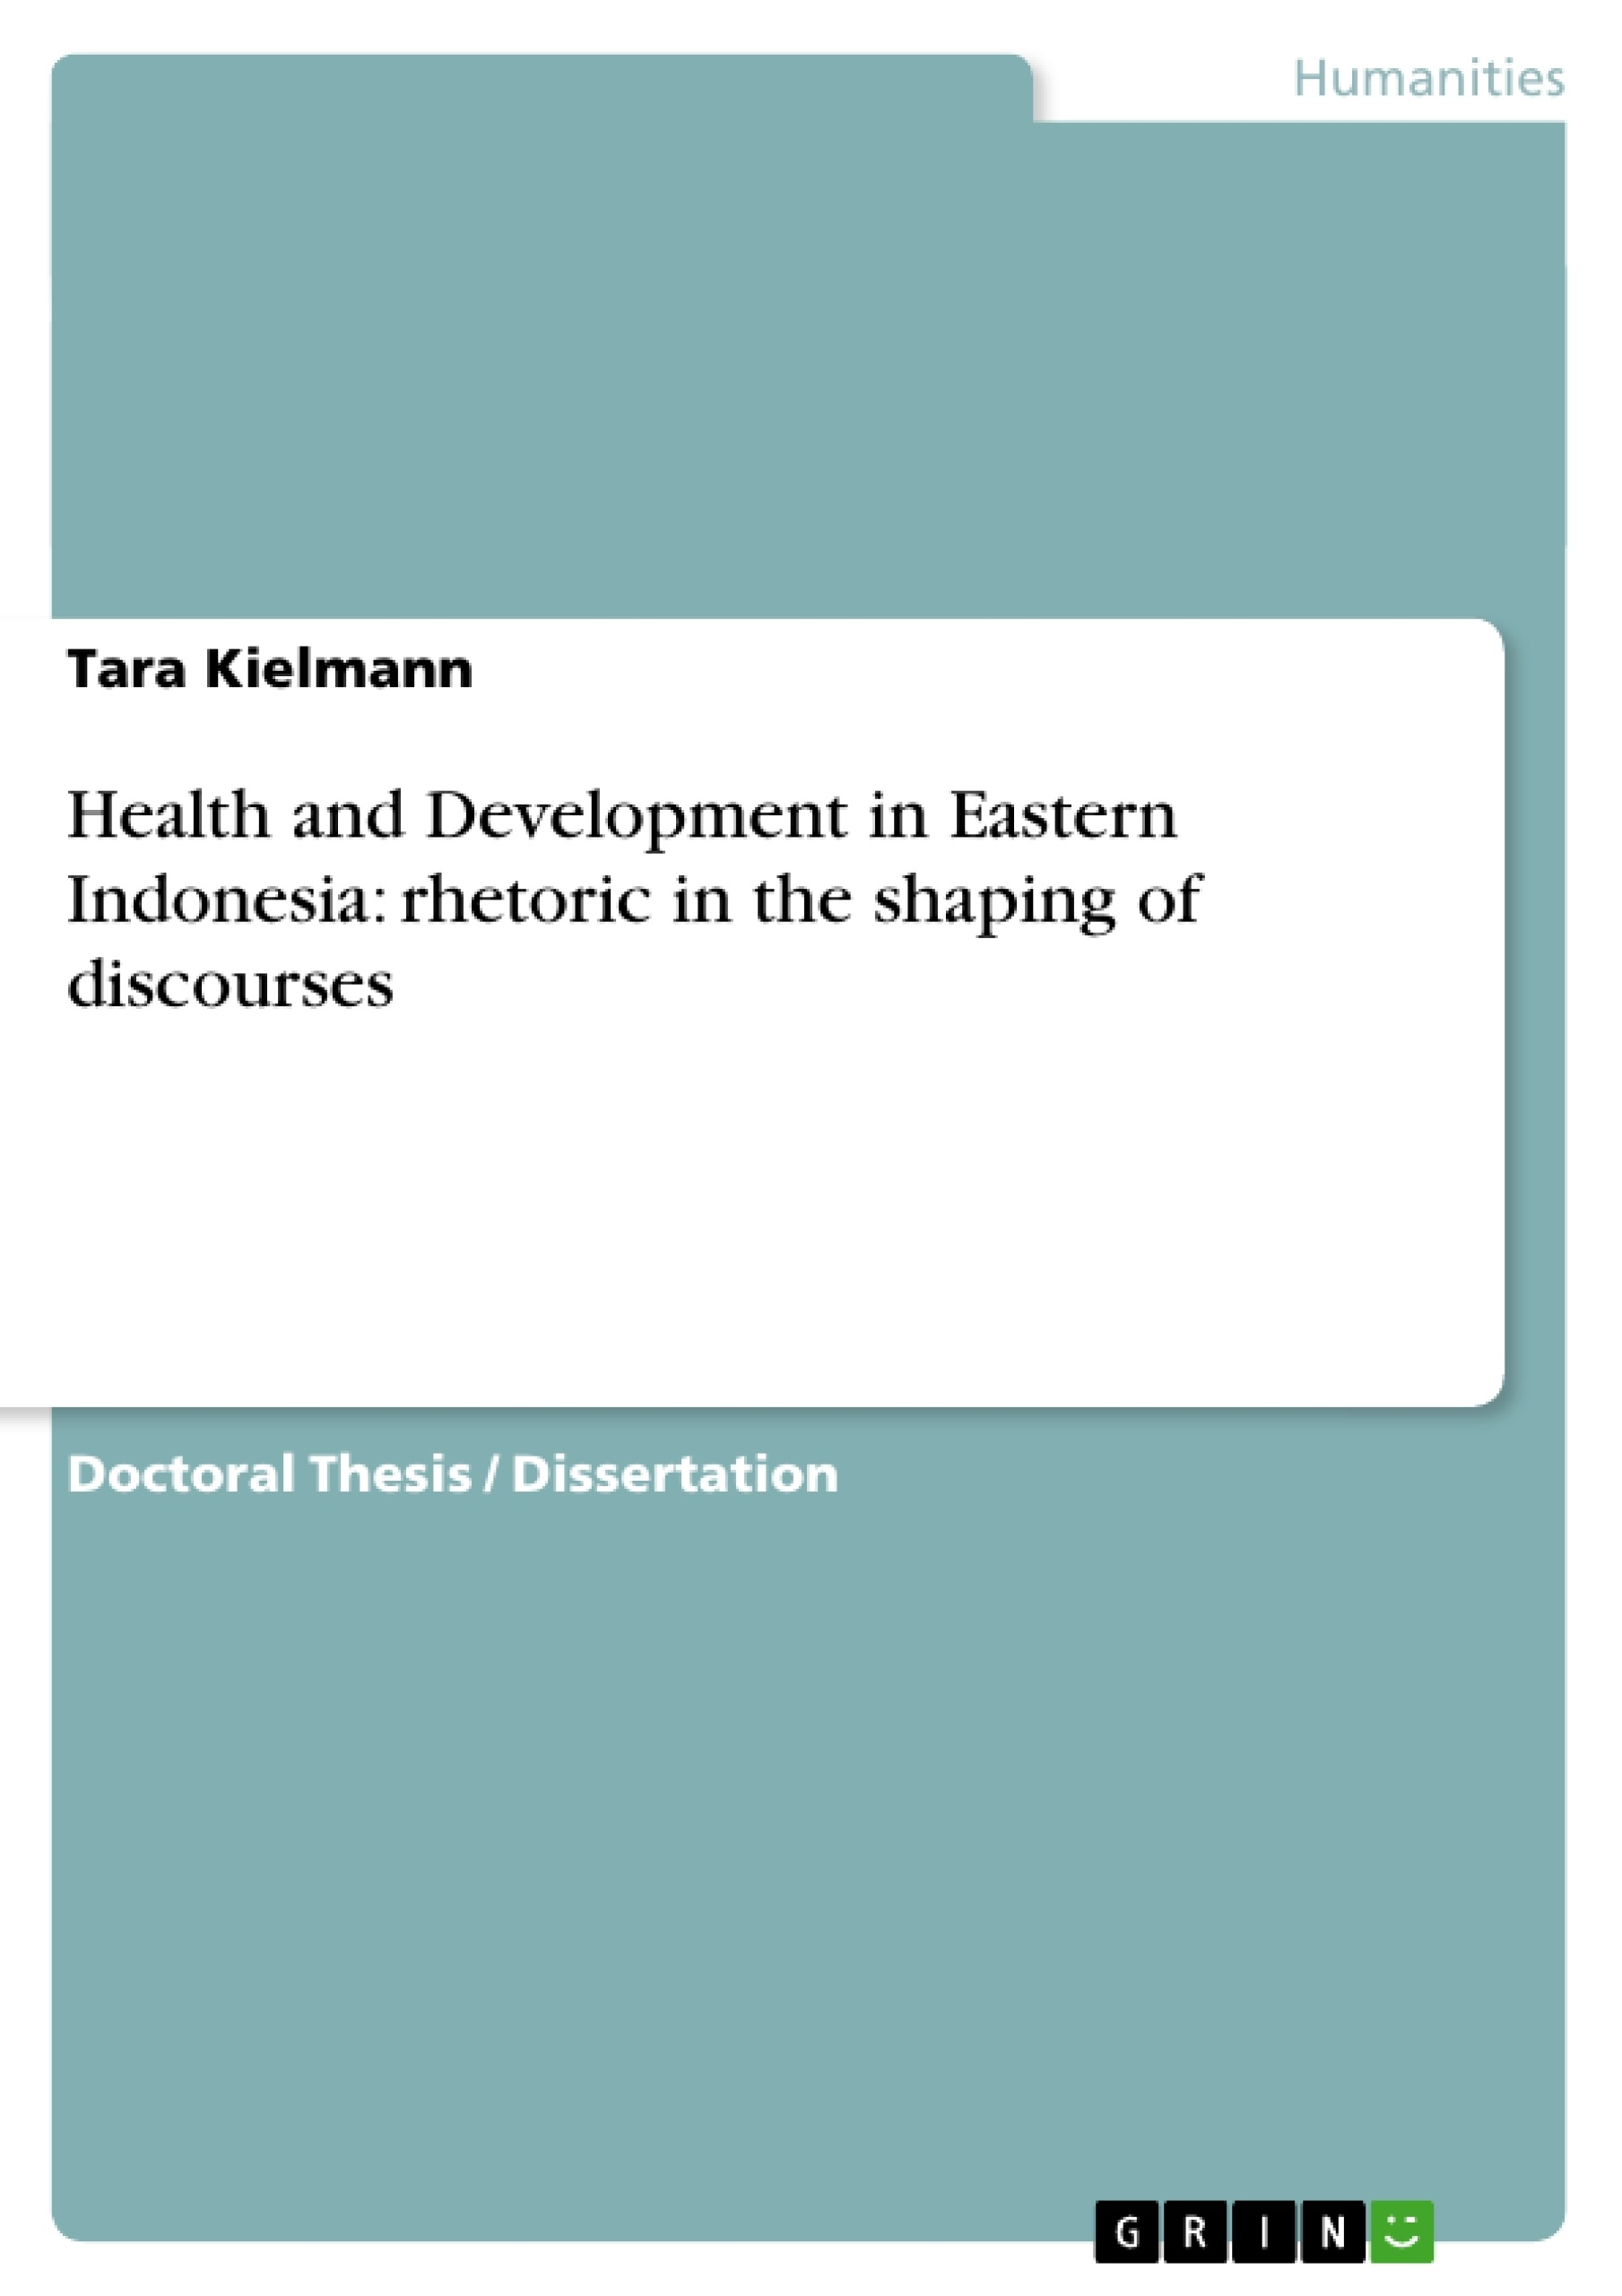 Health and Development in Eastern Indonesia: rhetoric in the